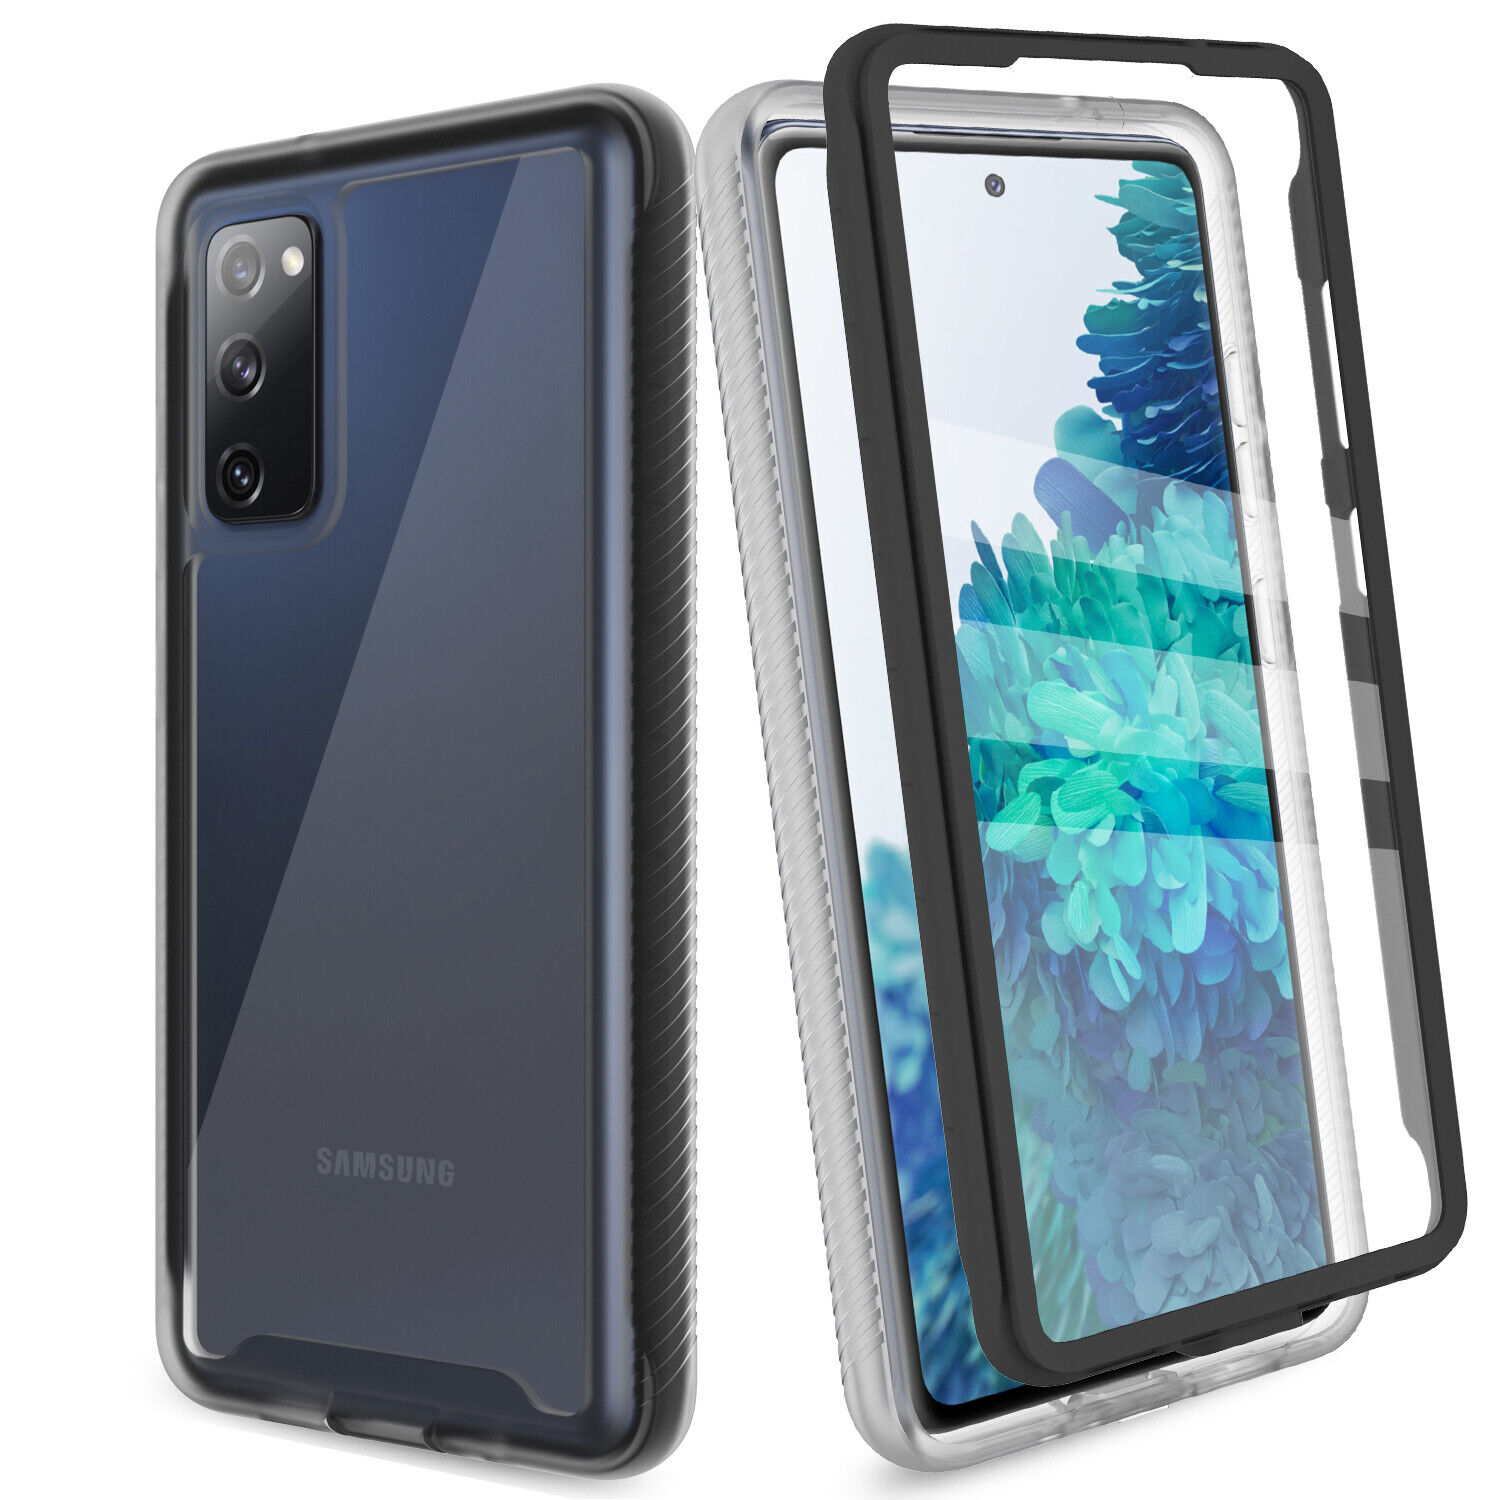 For Samsung Galaxy S20 FE 5G,Fan Edition Case Cover W/ Built-in Screen Protector Cases, Covers & Skins